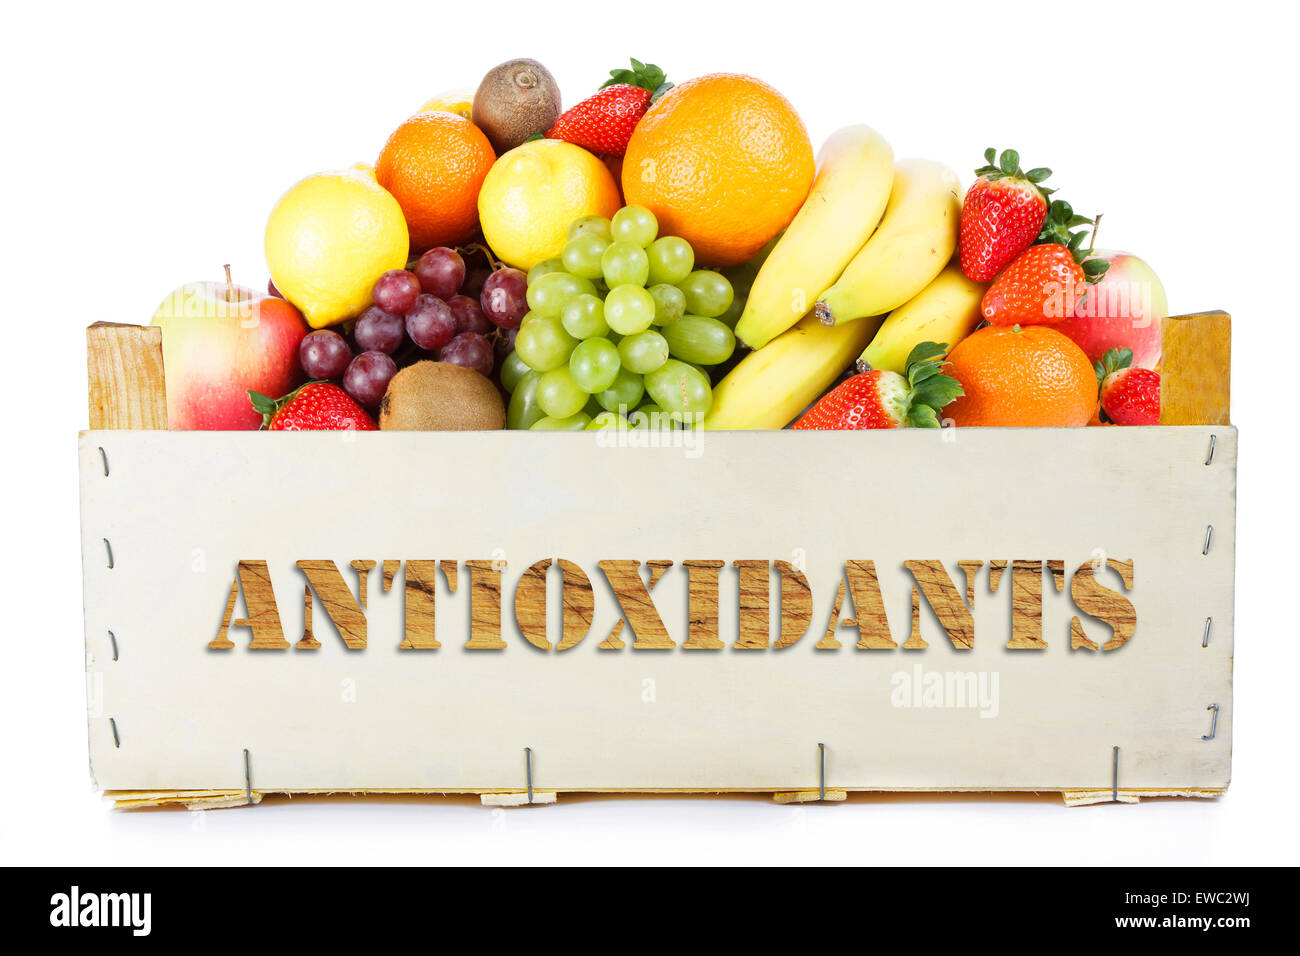 Antioxidants. Fruits in wooden box - Stock Image